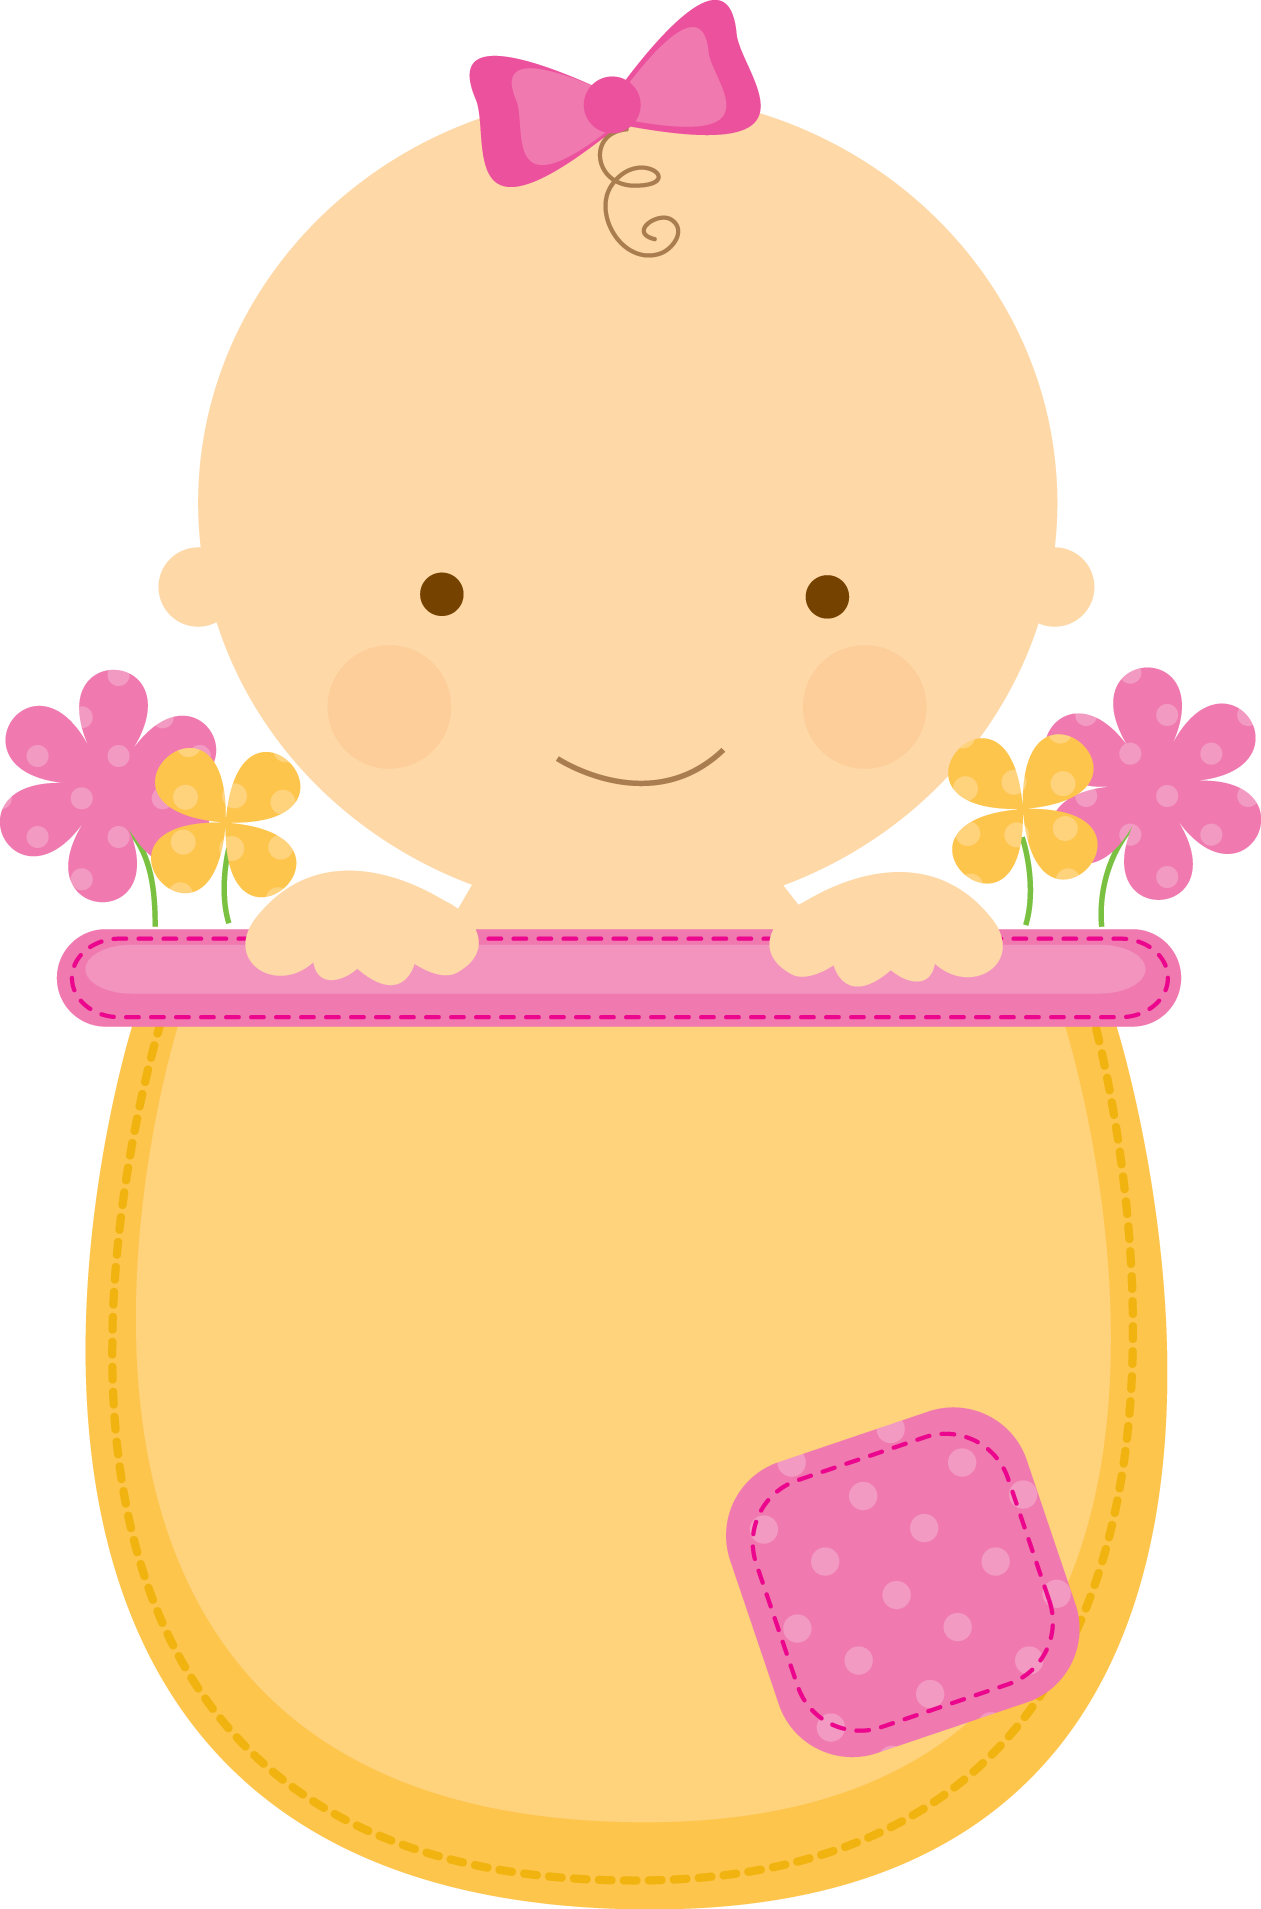 Baby shower clipart girl clip art royalty free library baby shower niña | Baby Girl | Pinterest | Babies, Clip art and ... clip art royalty free library